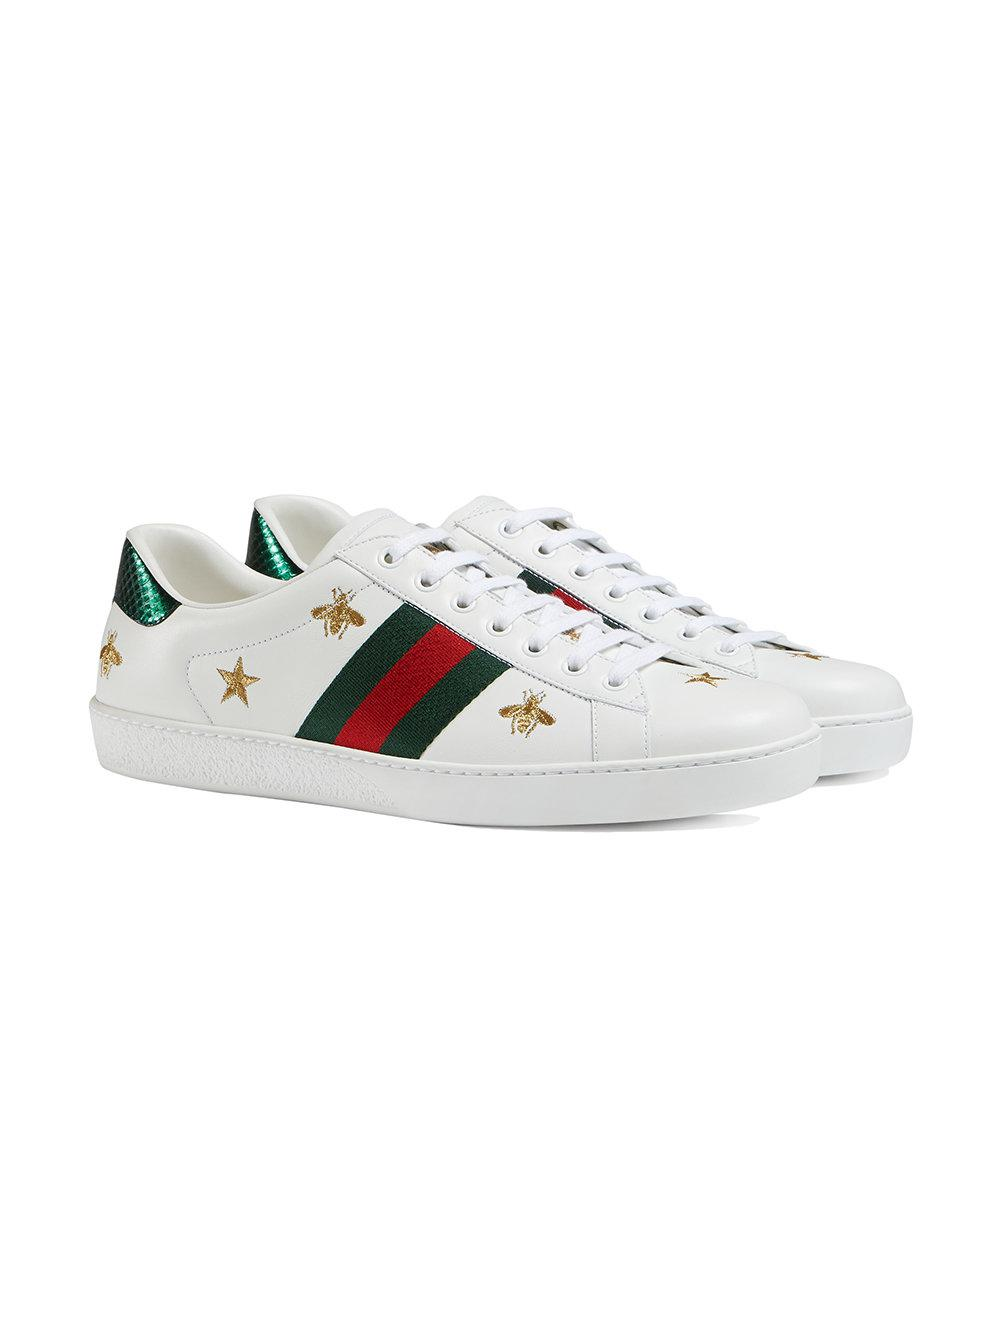 c5b5685ef04 Lyst - Gucci Ace Embroidered Low-top Sneaker in White for Men